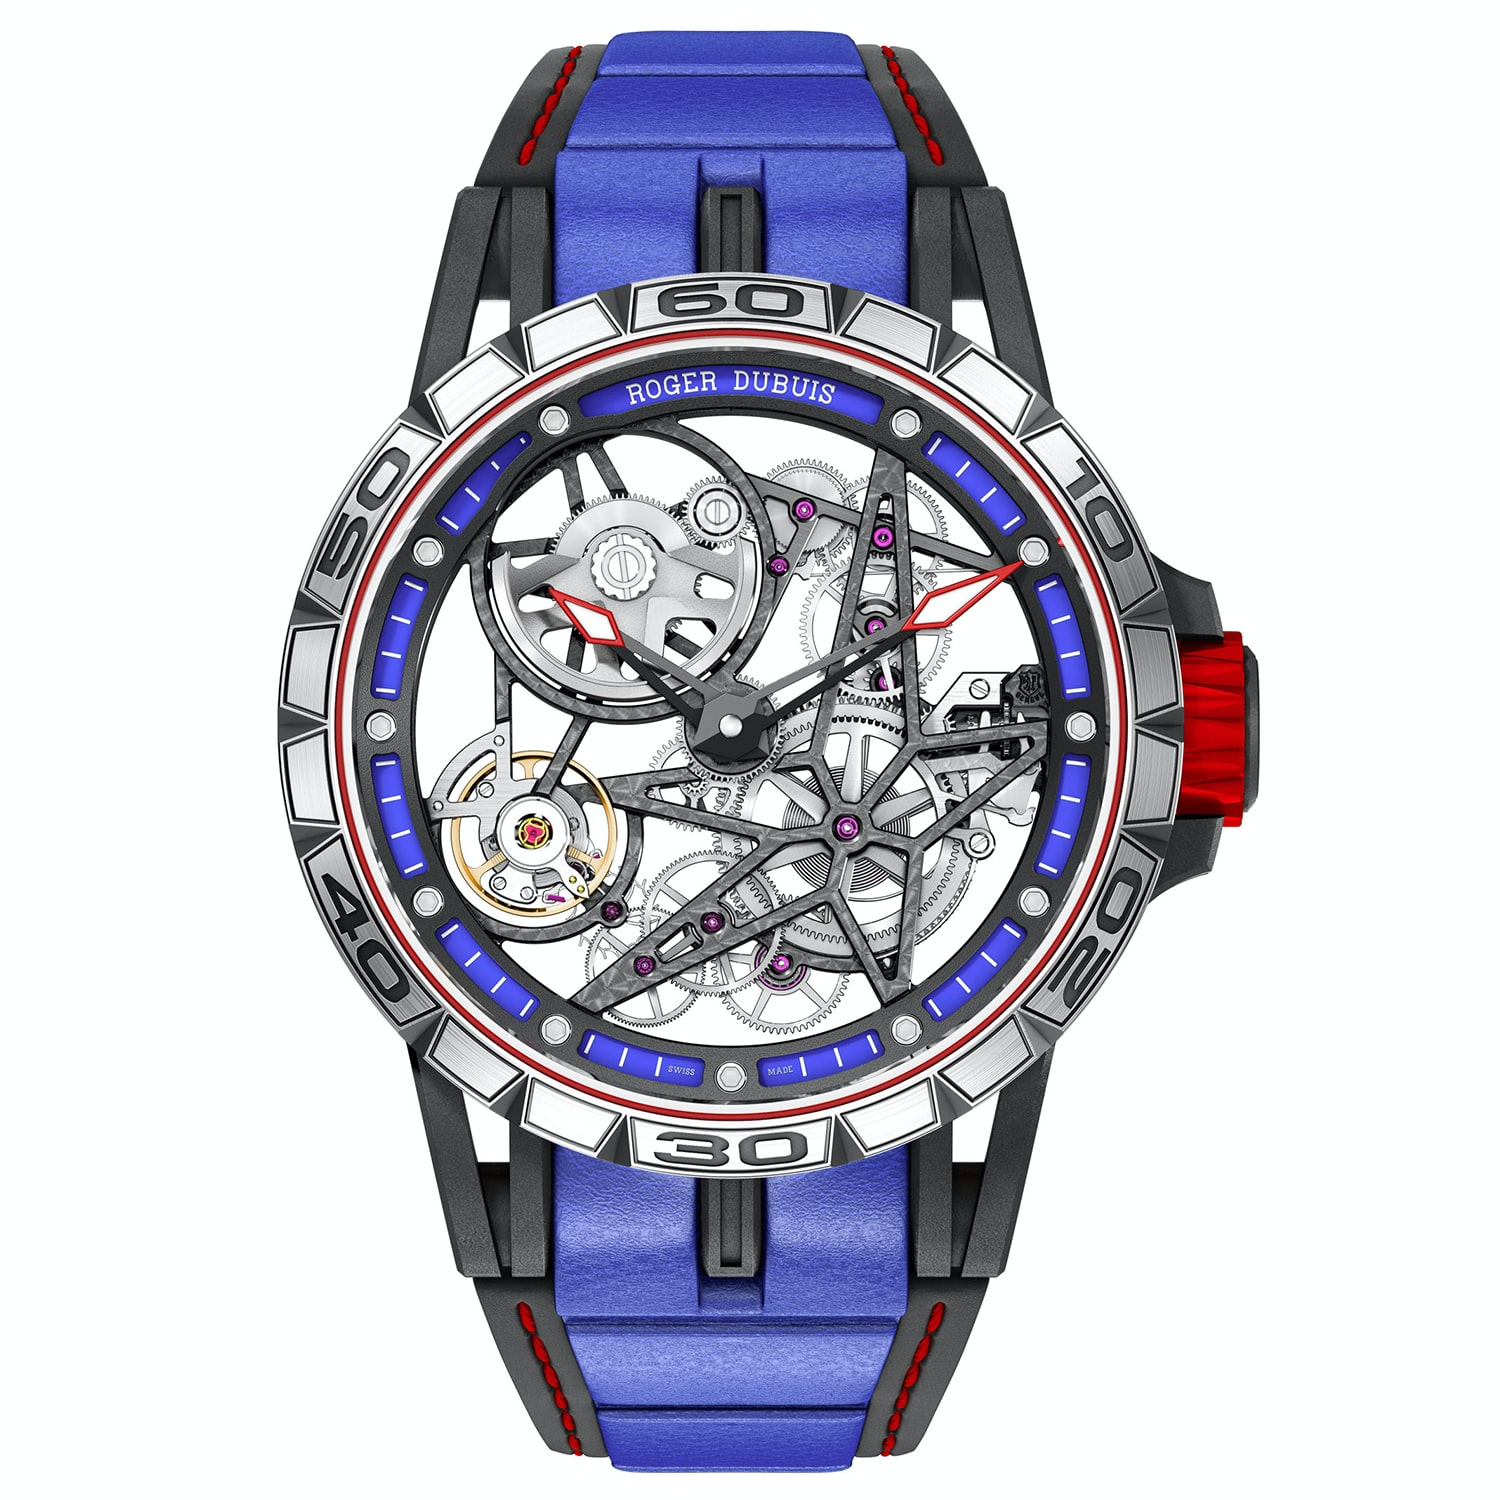 The Roger Dubuis Excalibur Spider Skeleton Automatic. Introducing: The Roger Dubuis Excalibur Quatuor Cobalt MicroMelt (And Two Other New Excalibur Watches) Introducing: The Roger Dubuis Excalibur Quatuor Cobalt MicroMelt (And Two Other New Excalibur Watches) 2b